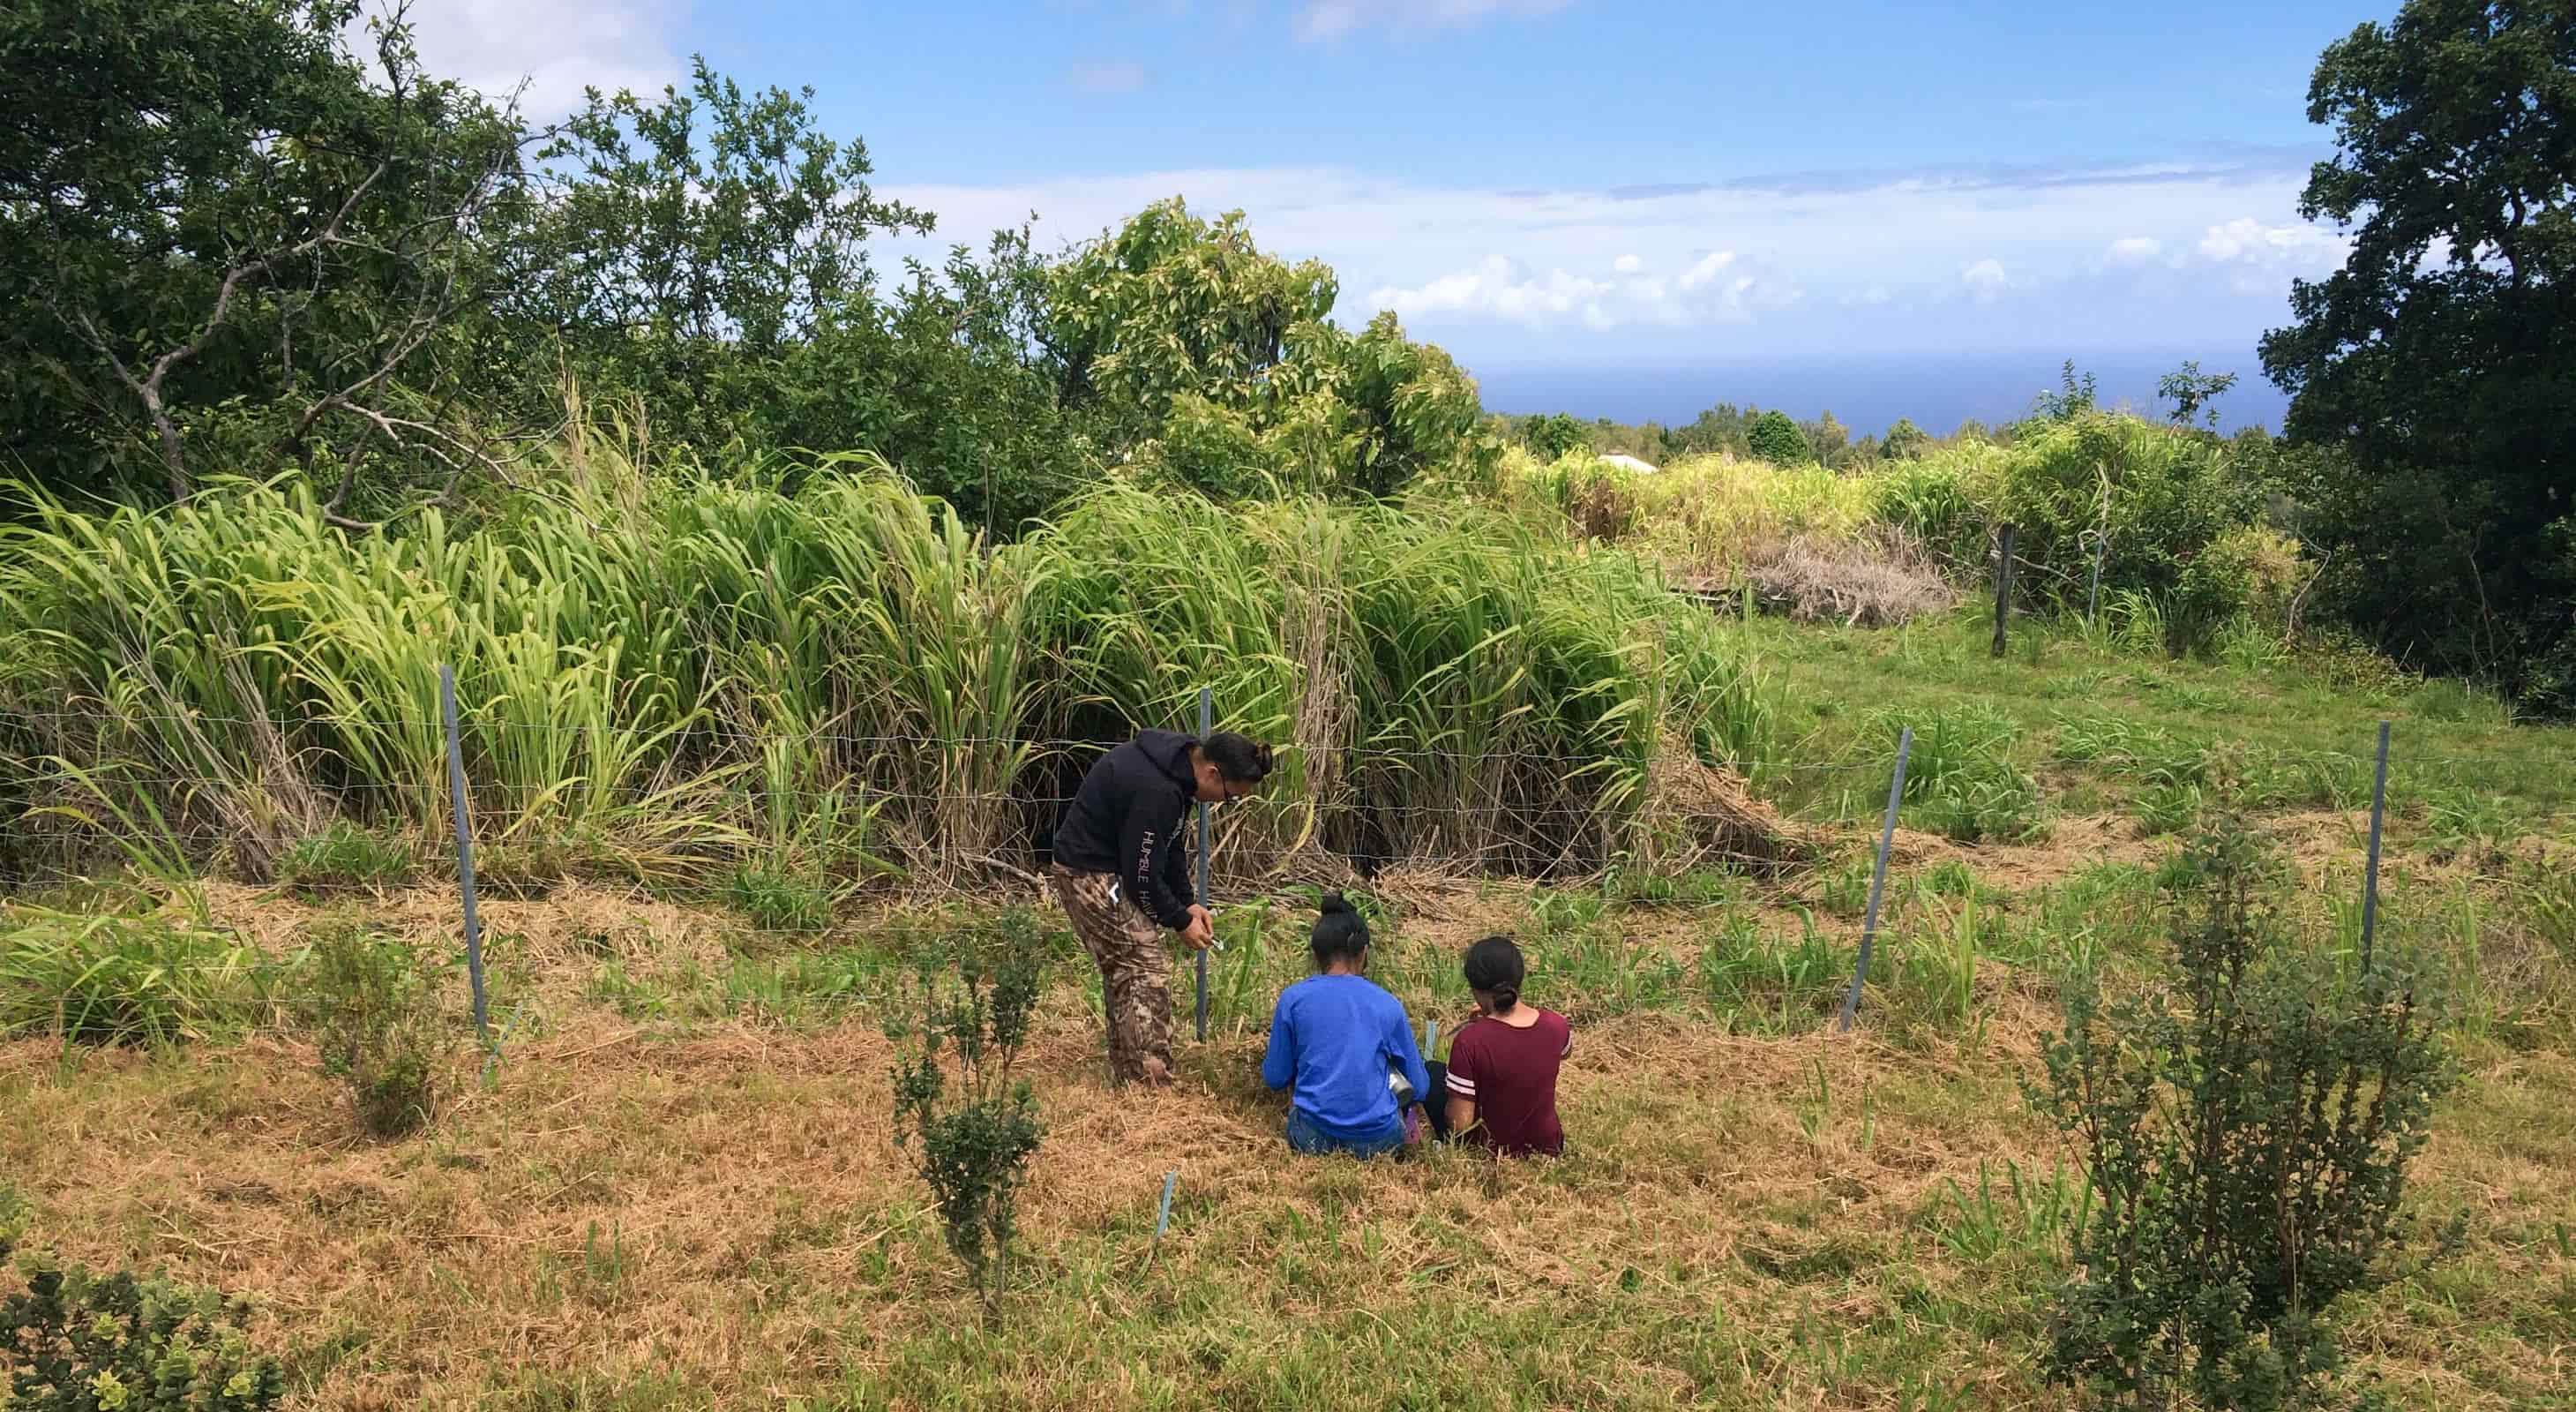 Hawaii Island students learn to plant trees